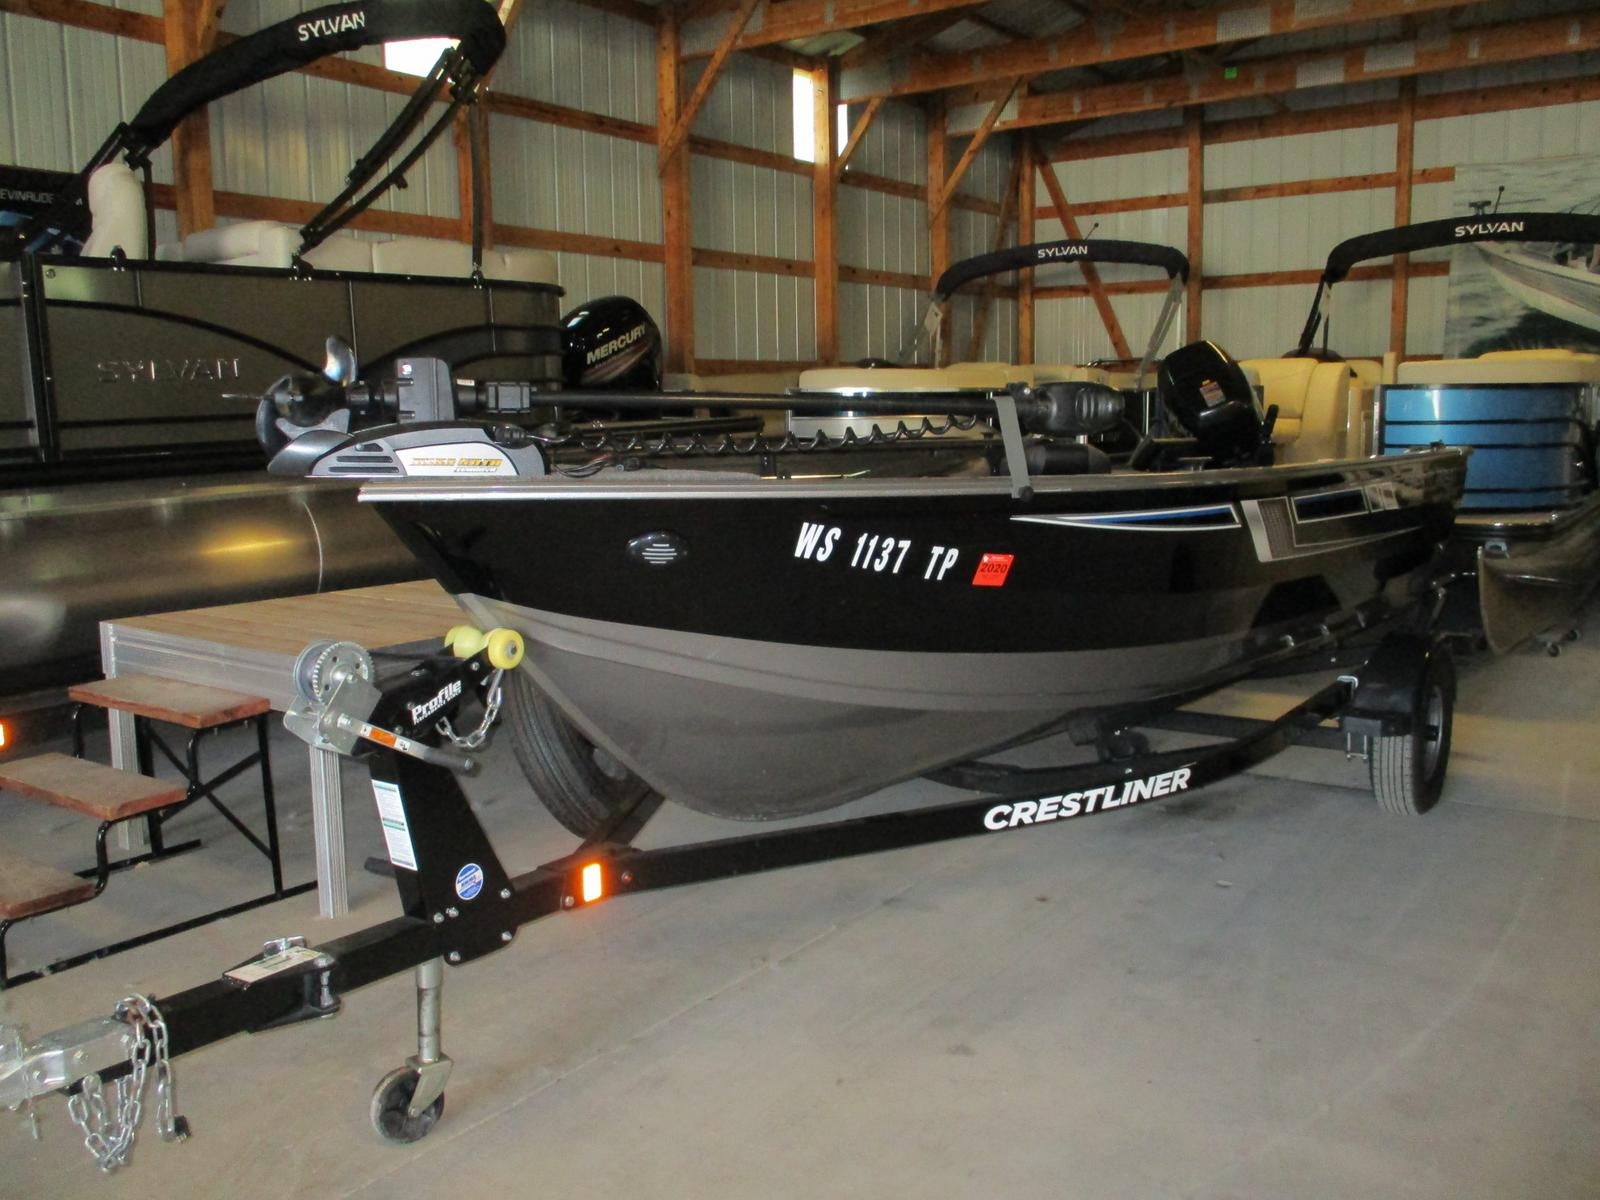 In-Stock New and Used Models For Sale in Amherst, WI Amherst Marine